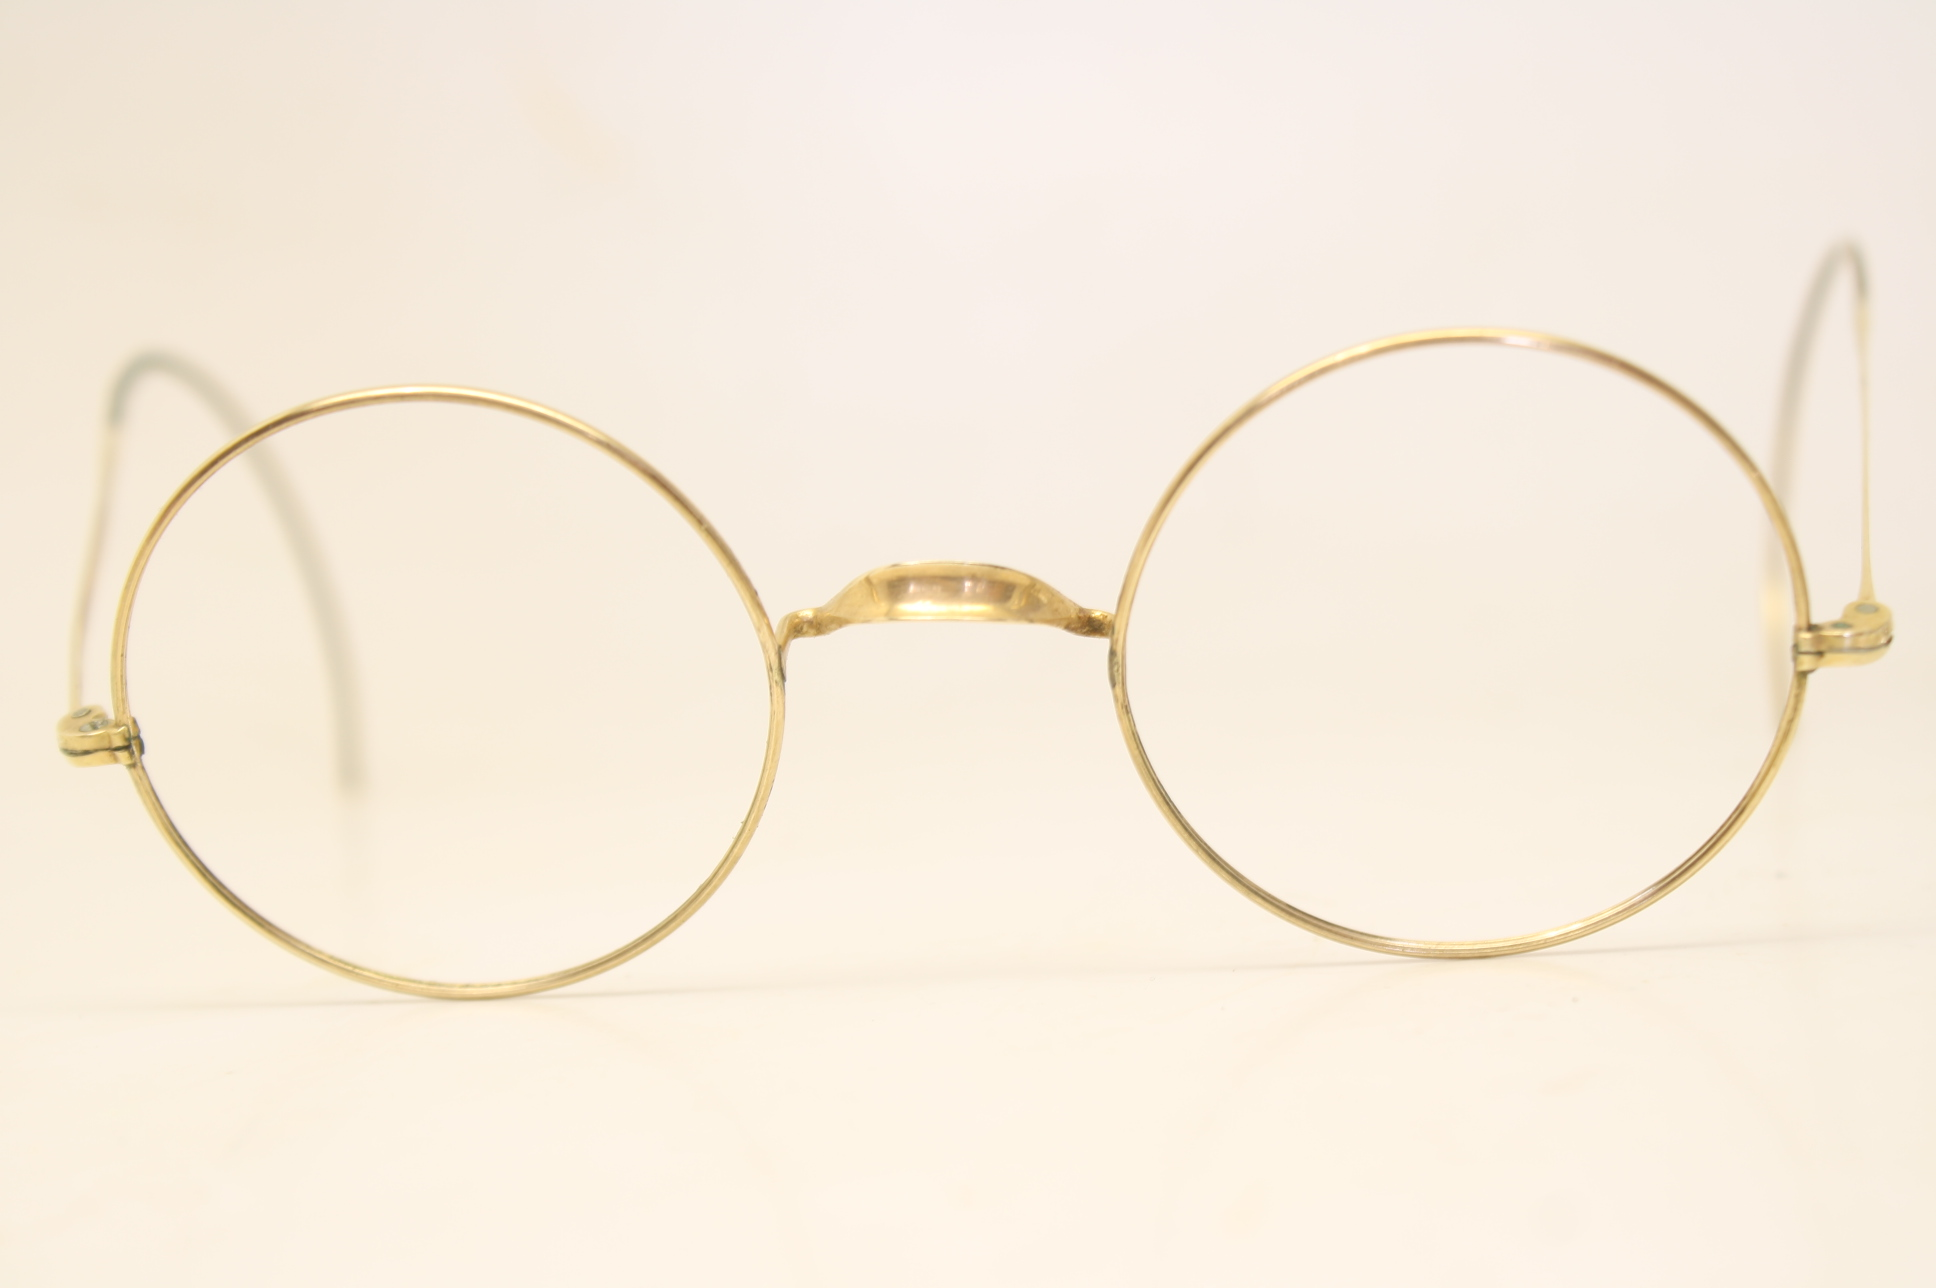 900ee8e85e35f Another common characteristic of vintage Windsor glasses is the cable  temples. As opposed to today s skull temples Windsor eyeglass frames had  cable temples ...